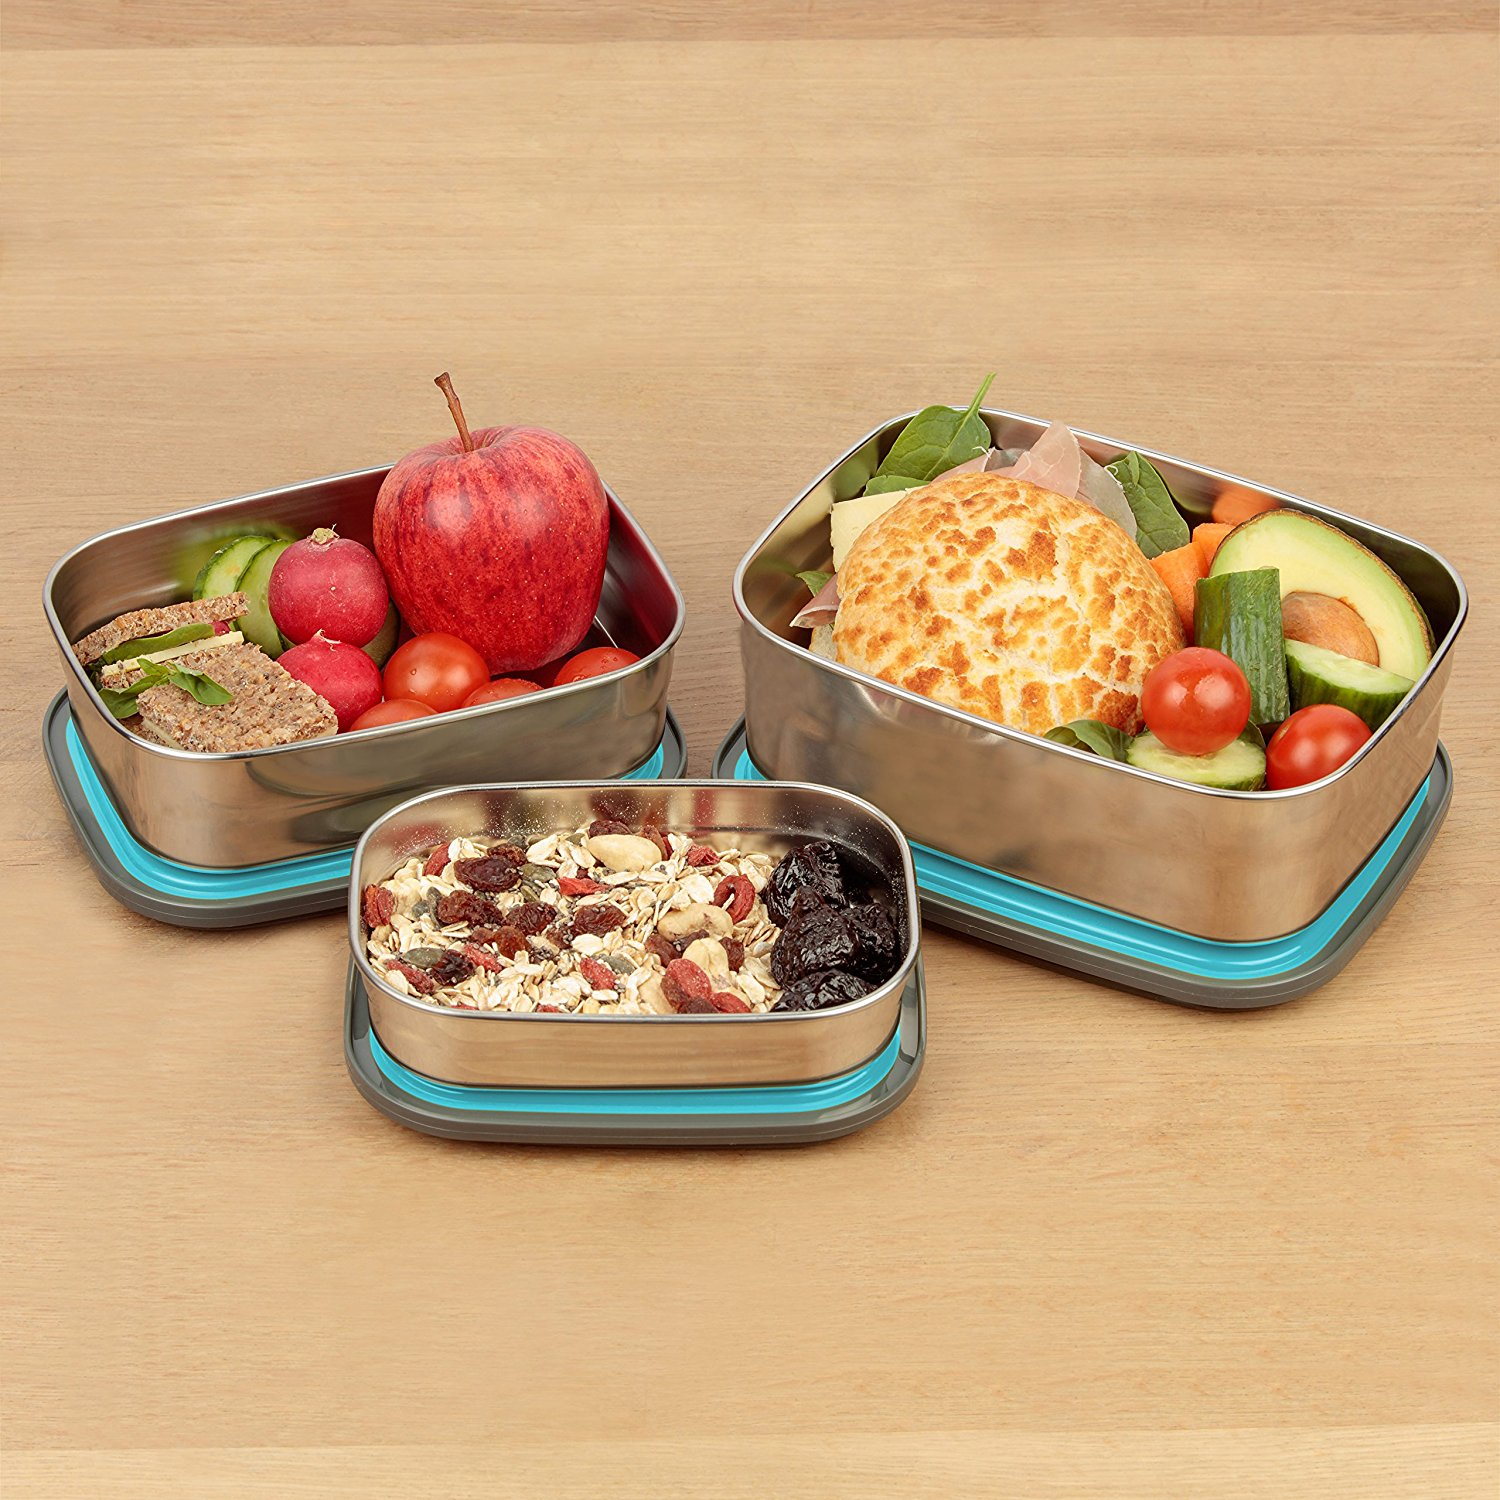 A2S Protection Bento Lunch Box-3pcs Set Meal Prep ...  |Bento Box Lunch Containers